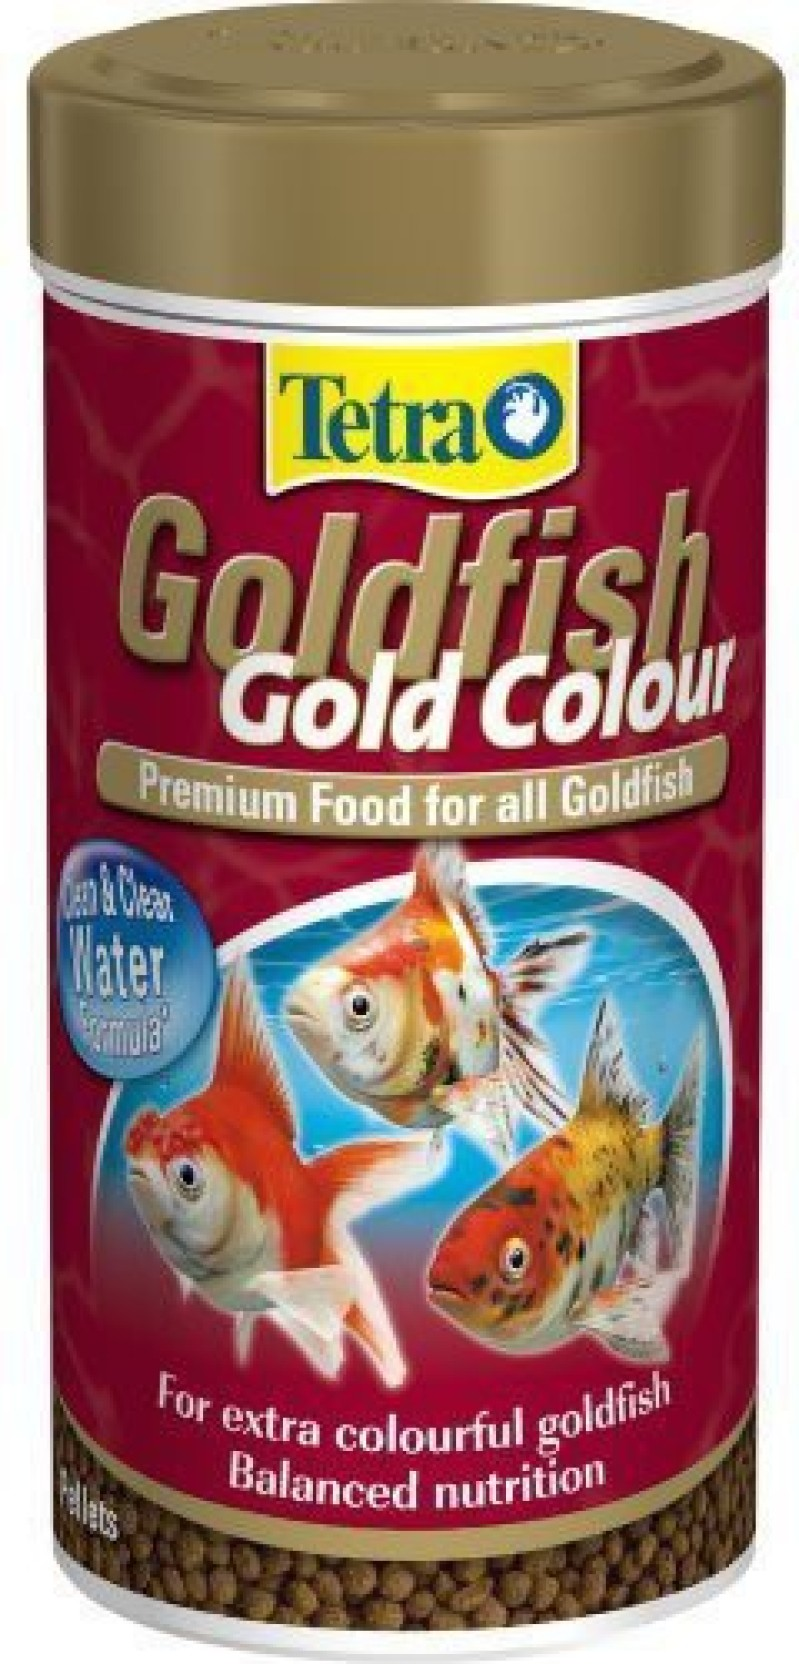 Tetra goldfish gold color 250 ml Dry Fish Food Price in India - Buy ...